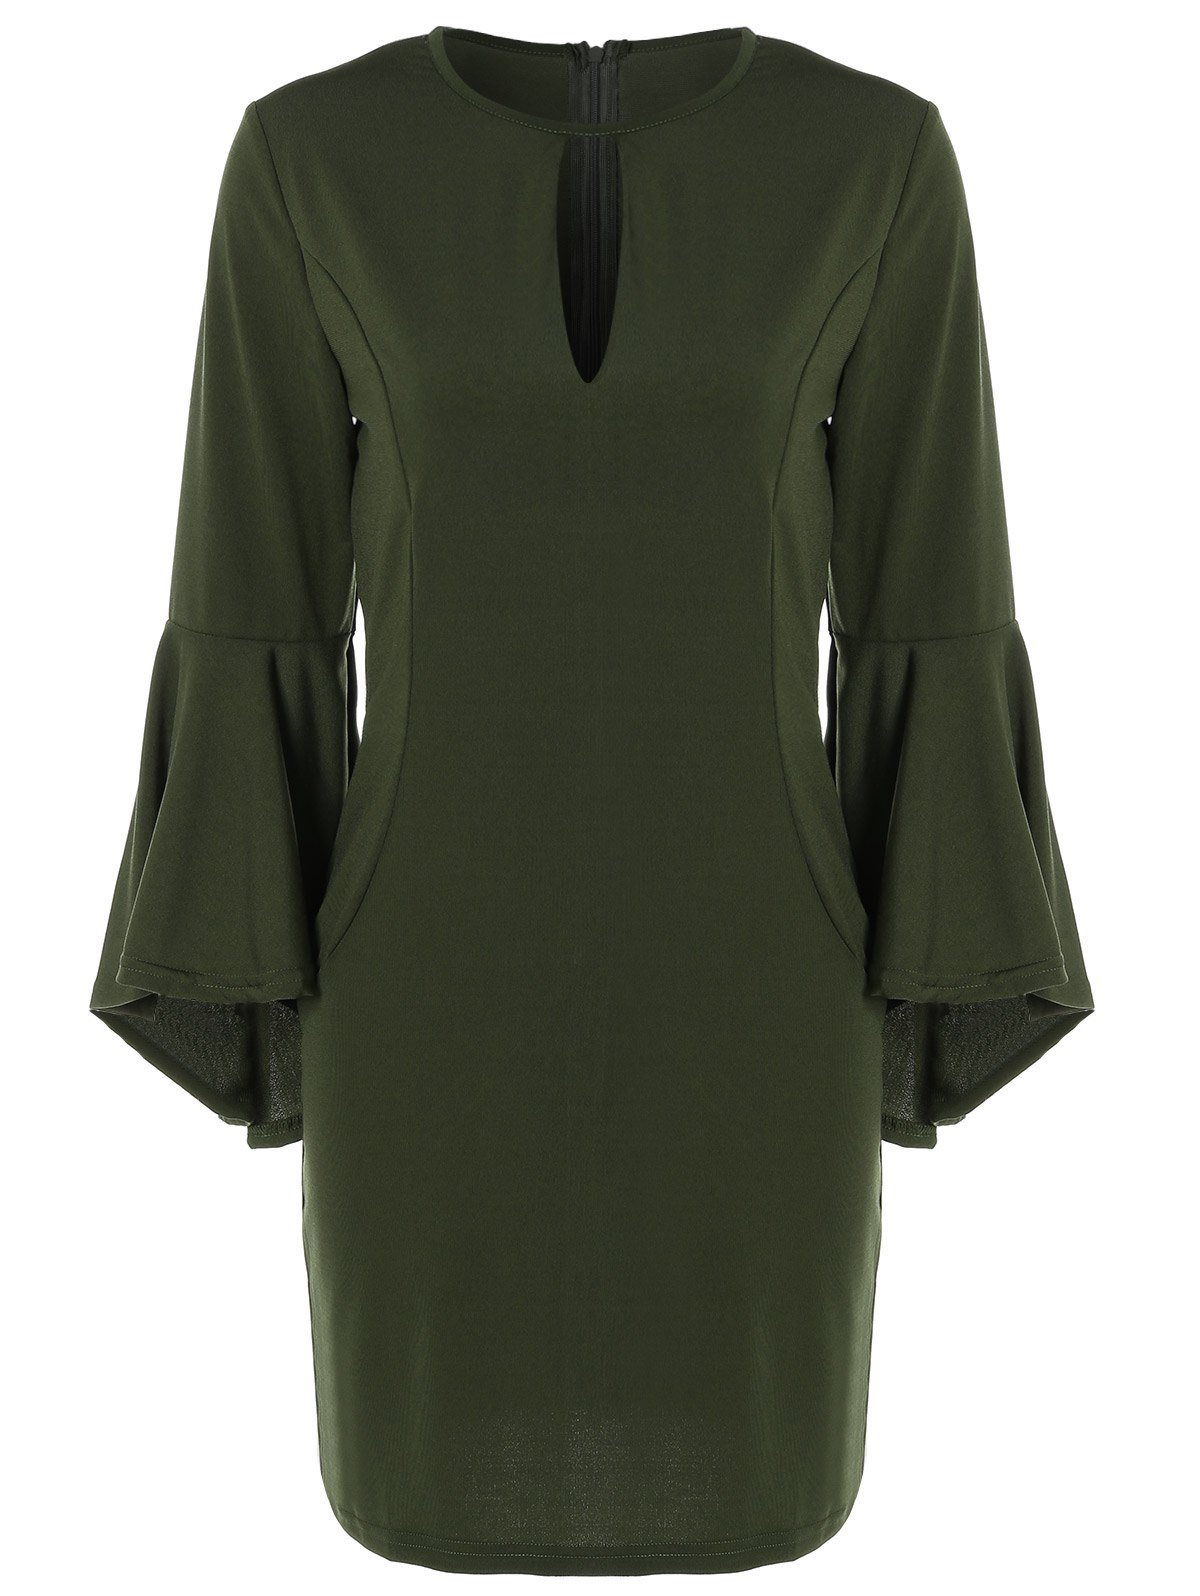 Store Bell Sleeve Keyhole Dress